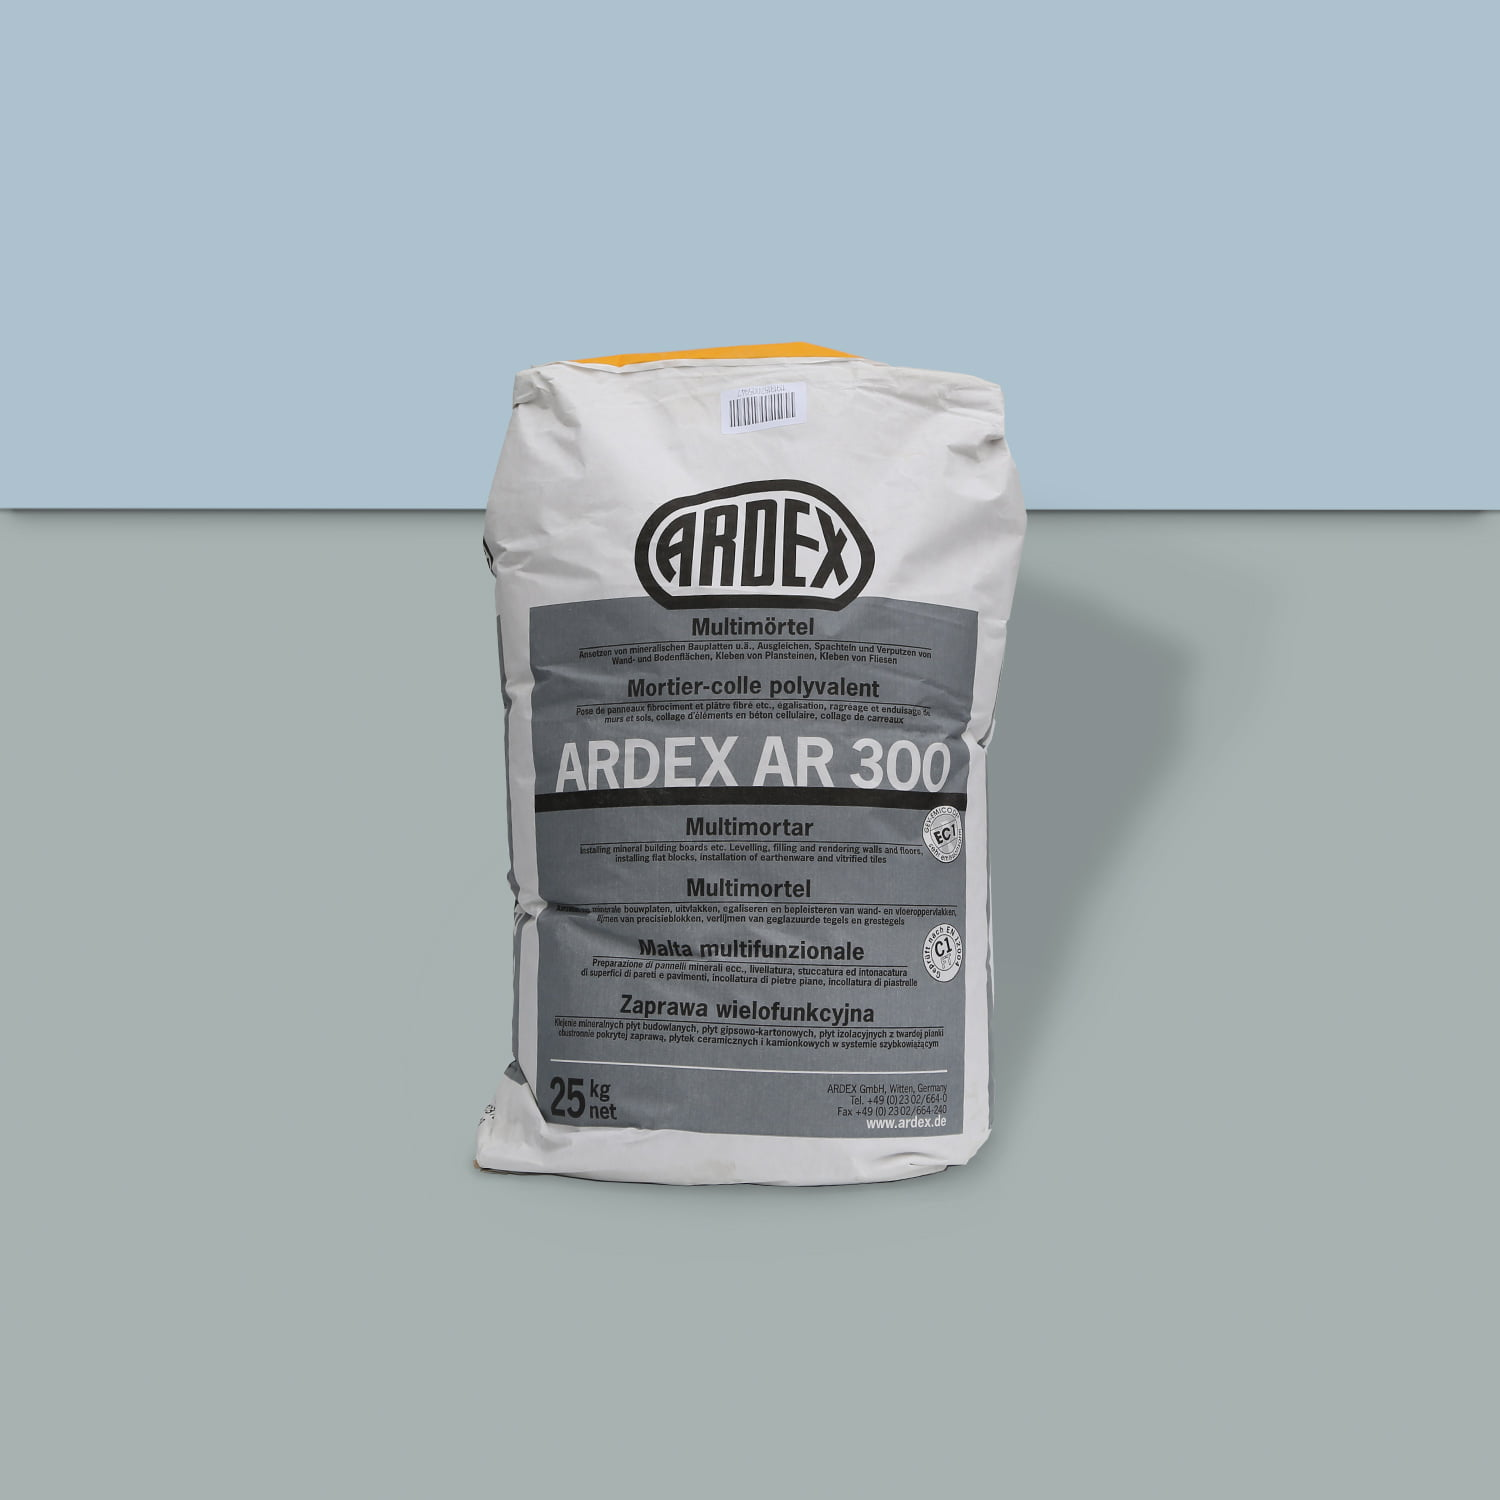 Ardex Ar 300 multimörtel